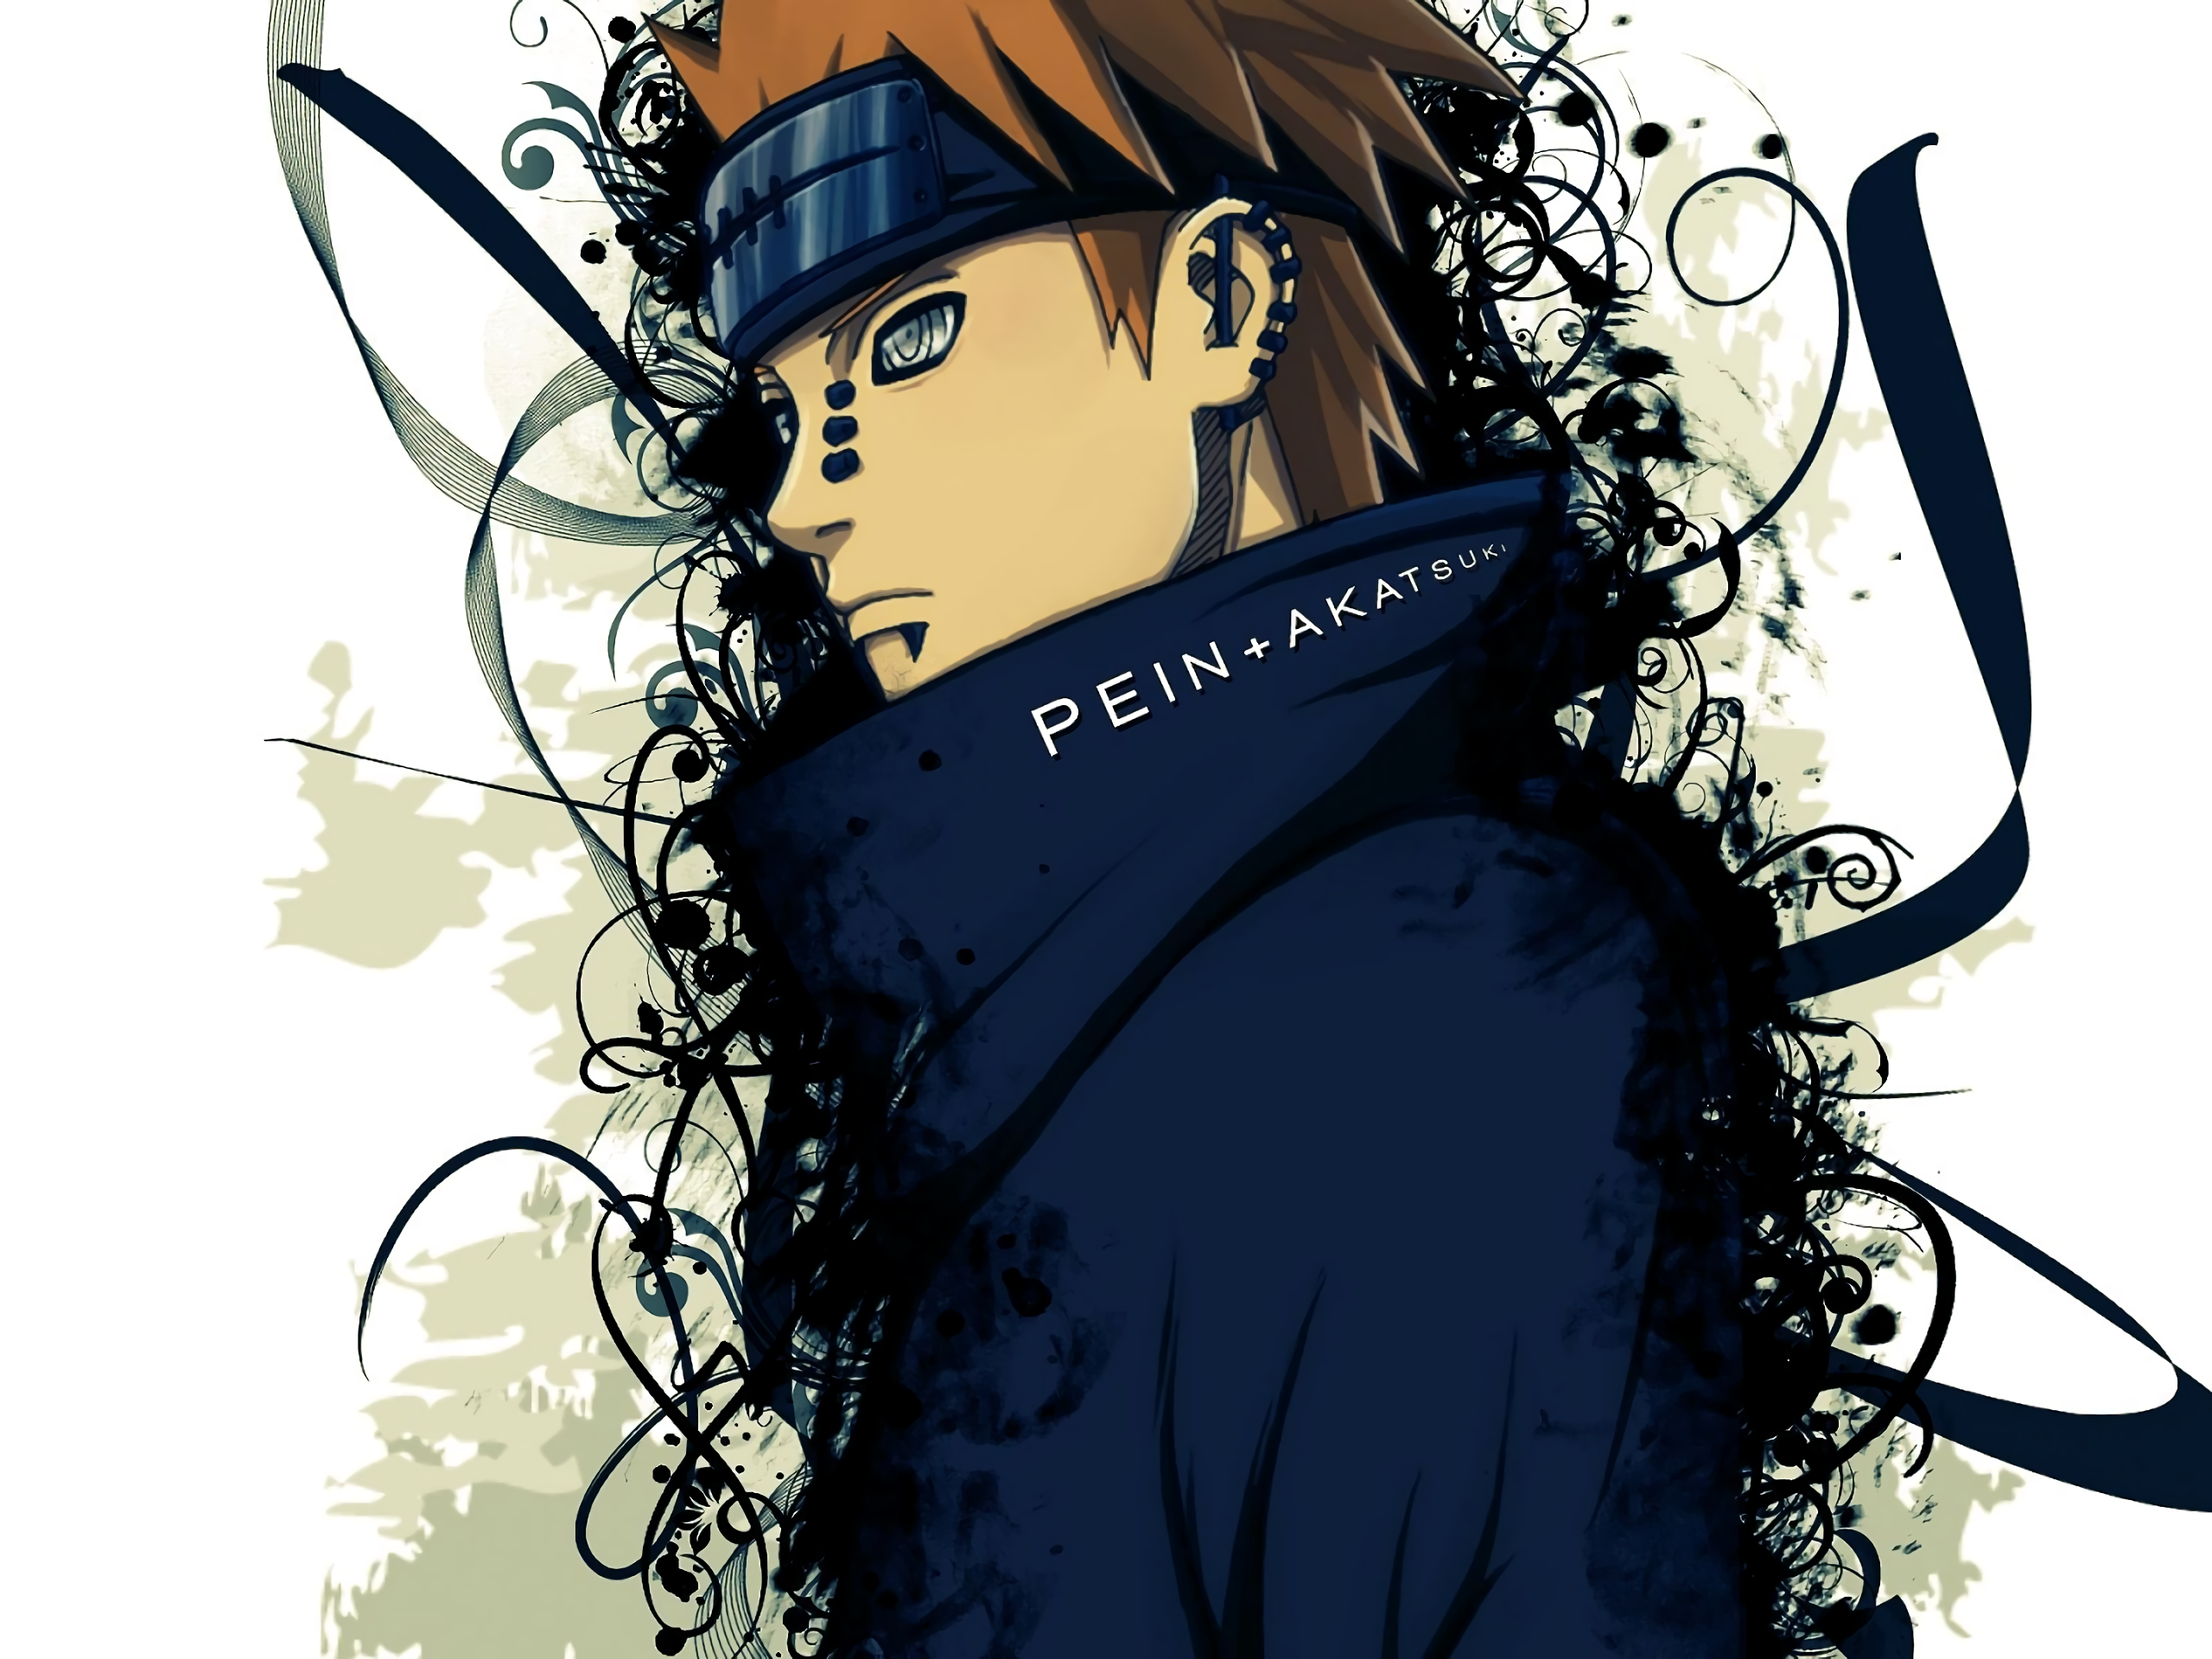 103 Pain Naruto HD Wallpapers Backgrounds   Wallpaper 2560x1920